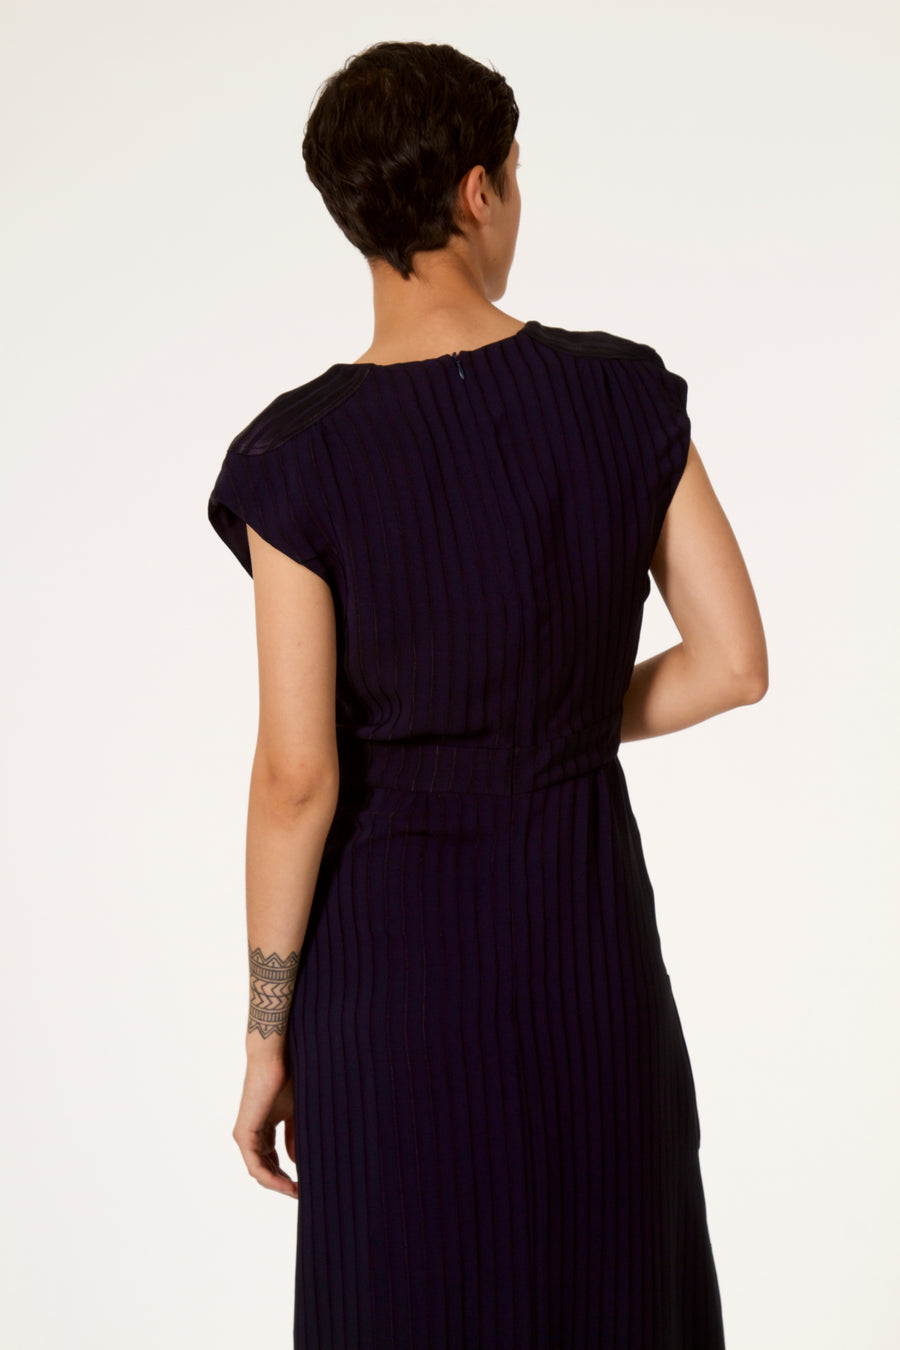 AMOUR Navy Dress